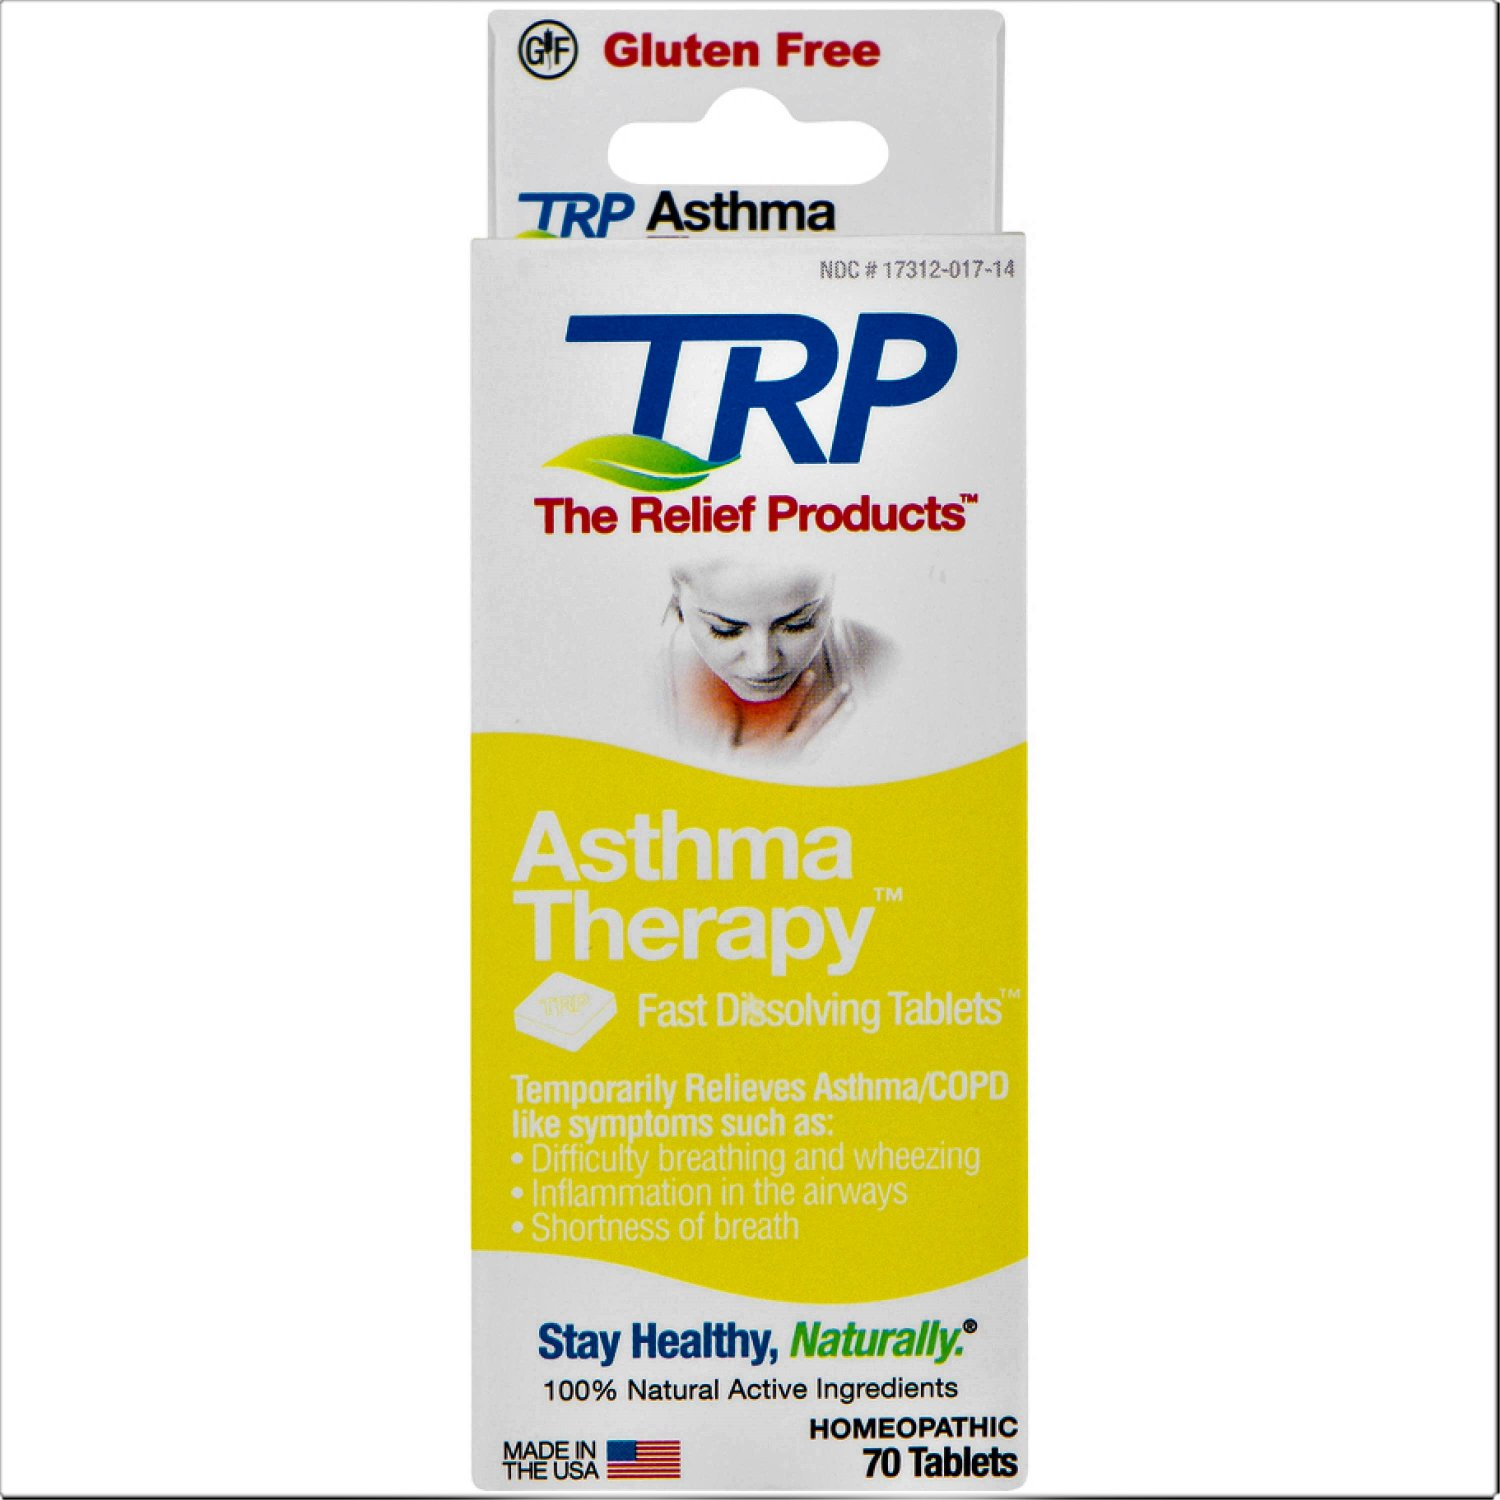 Trp Asthma Therapy Fast Dissolving Tablets 70 Count